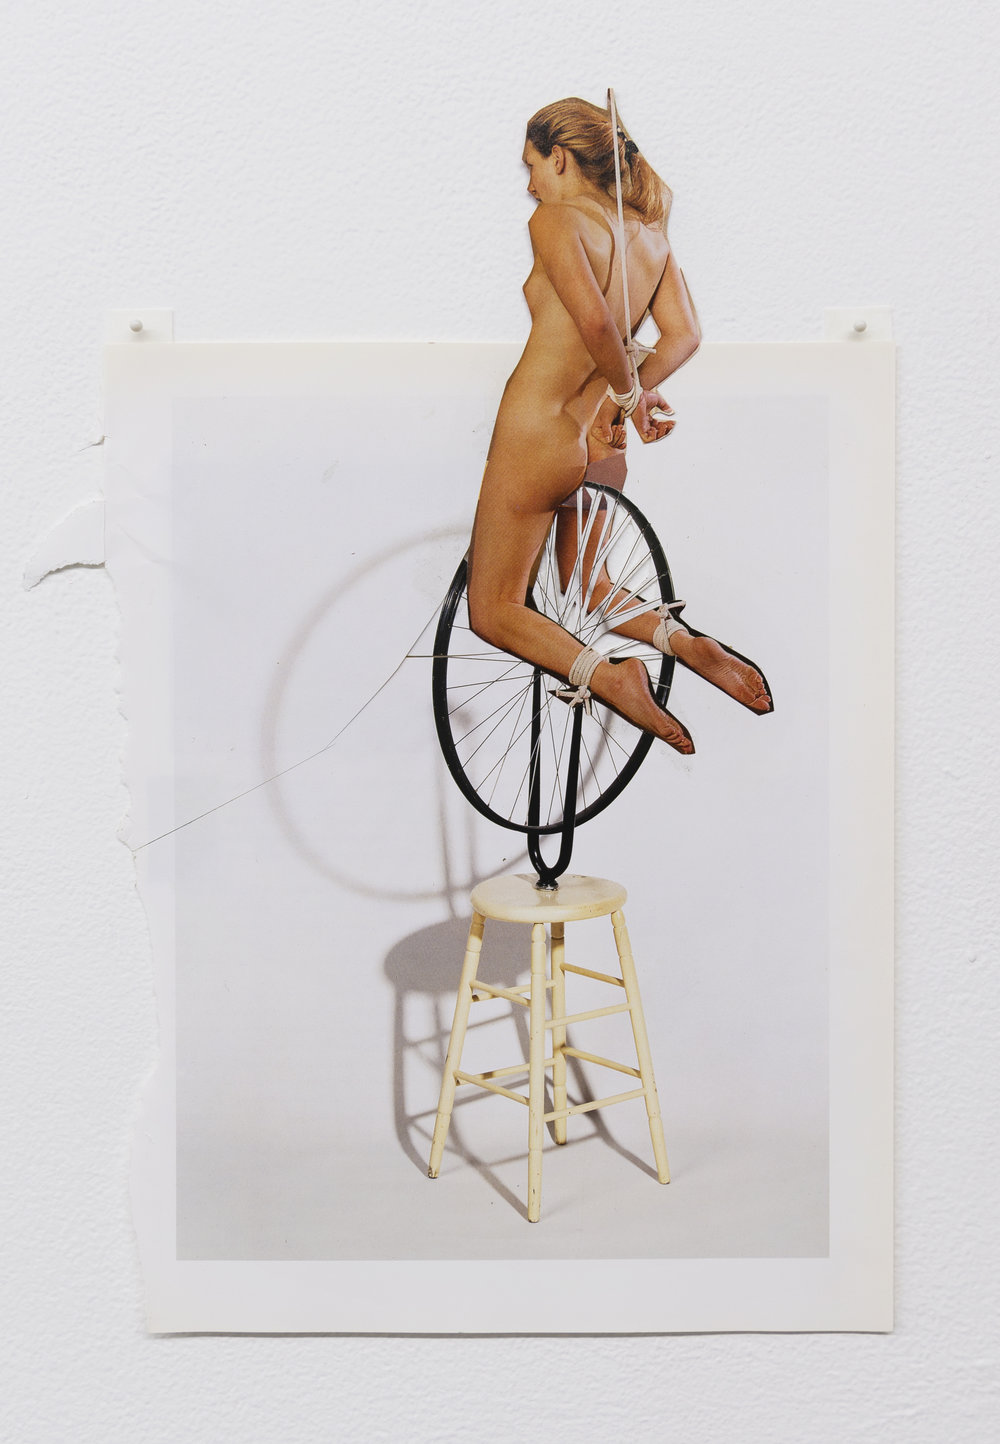 Narcissister,  Studies for Participatory Sculptures, Untitled (Bound to bicycle wheel, after Marcel Duchamp) , 2018, Paper, rubber cement, 14.75 x 10.5 in